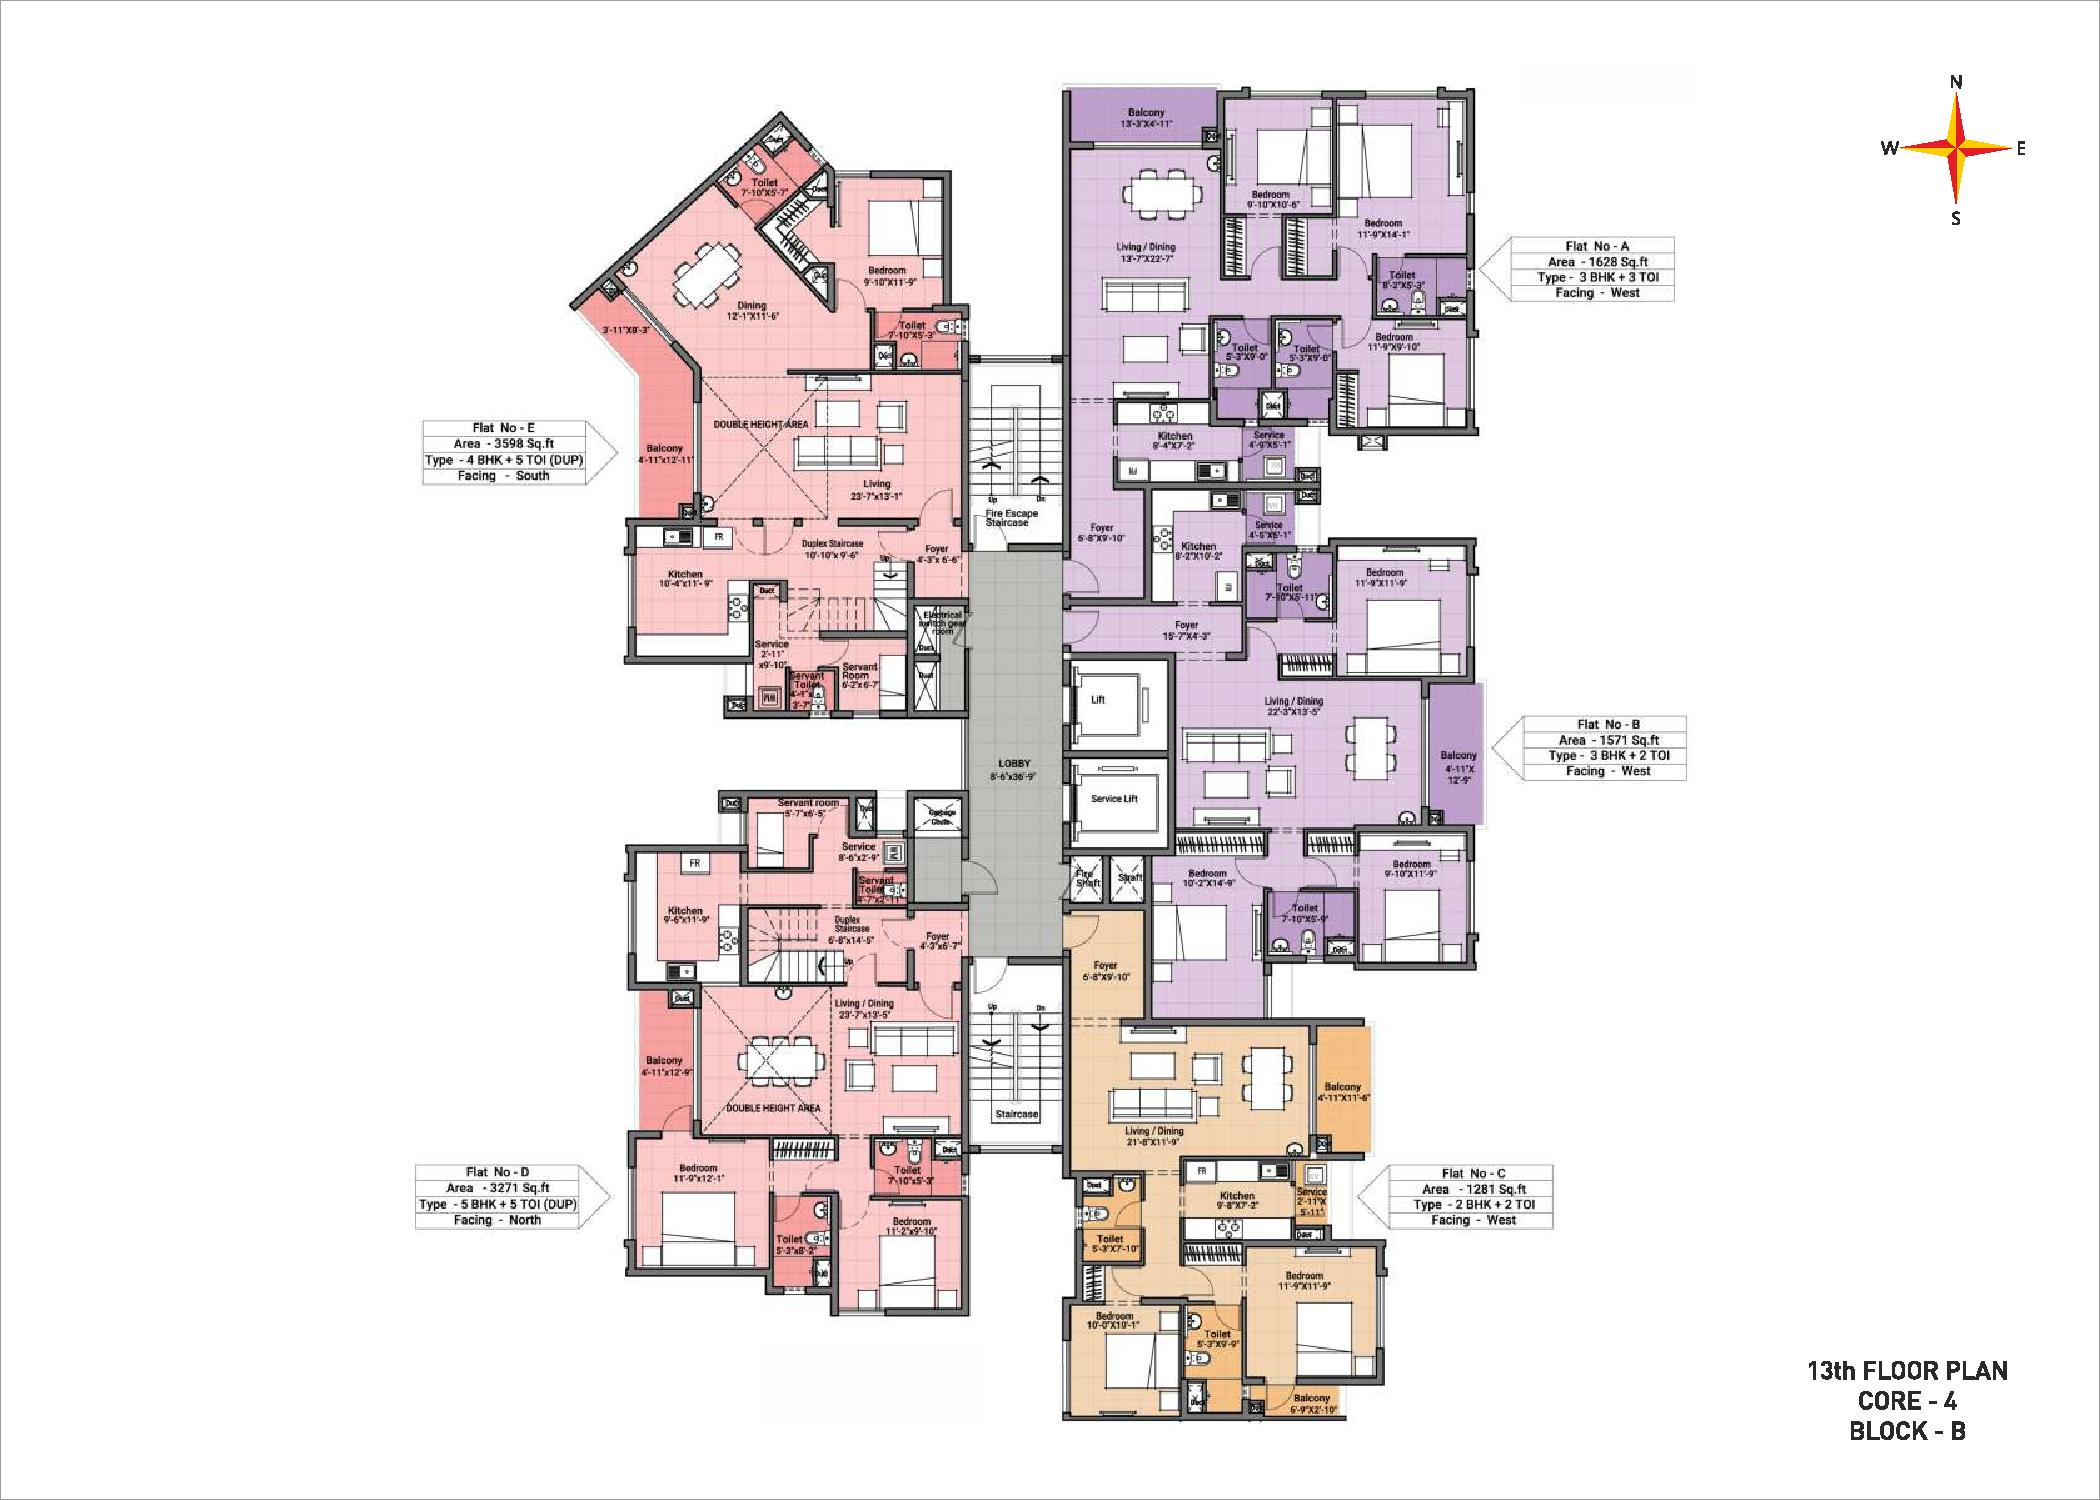 13th Floor plan Block B Core 4